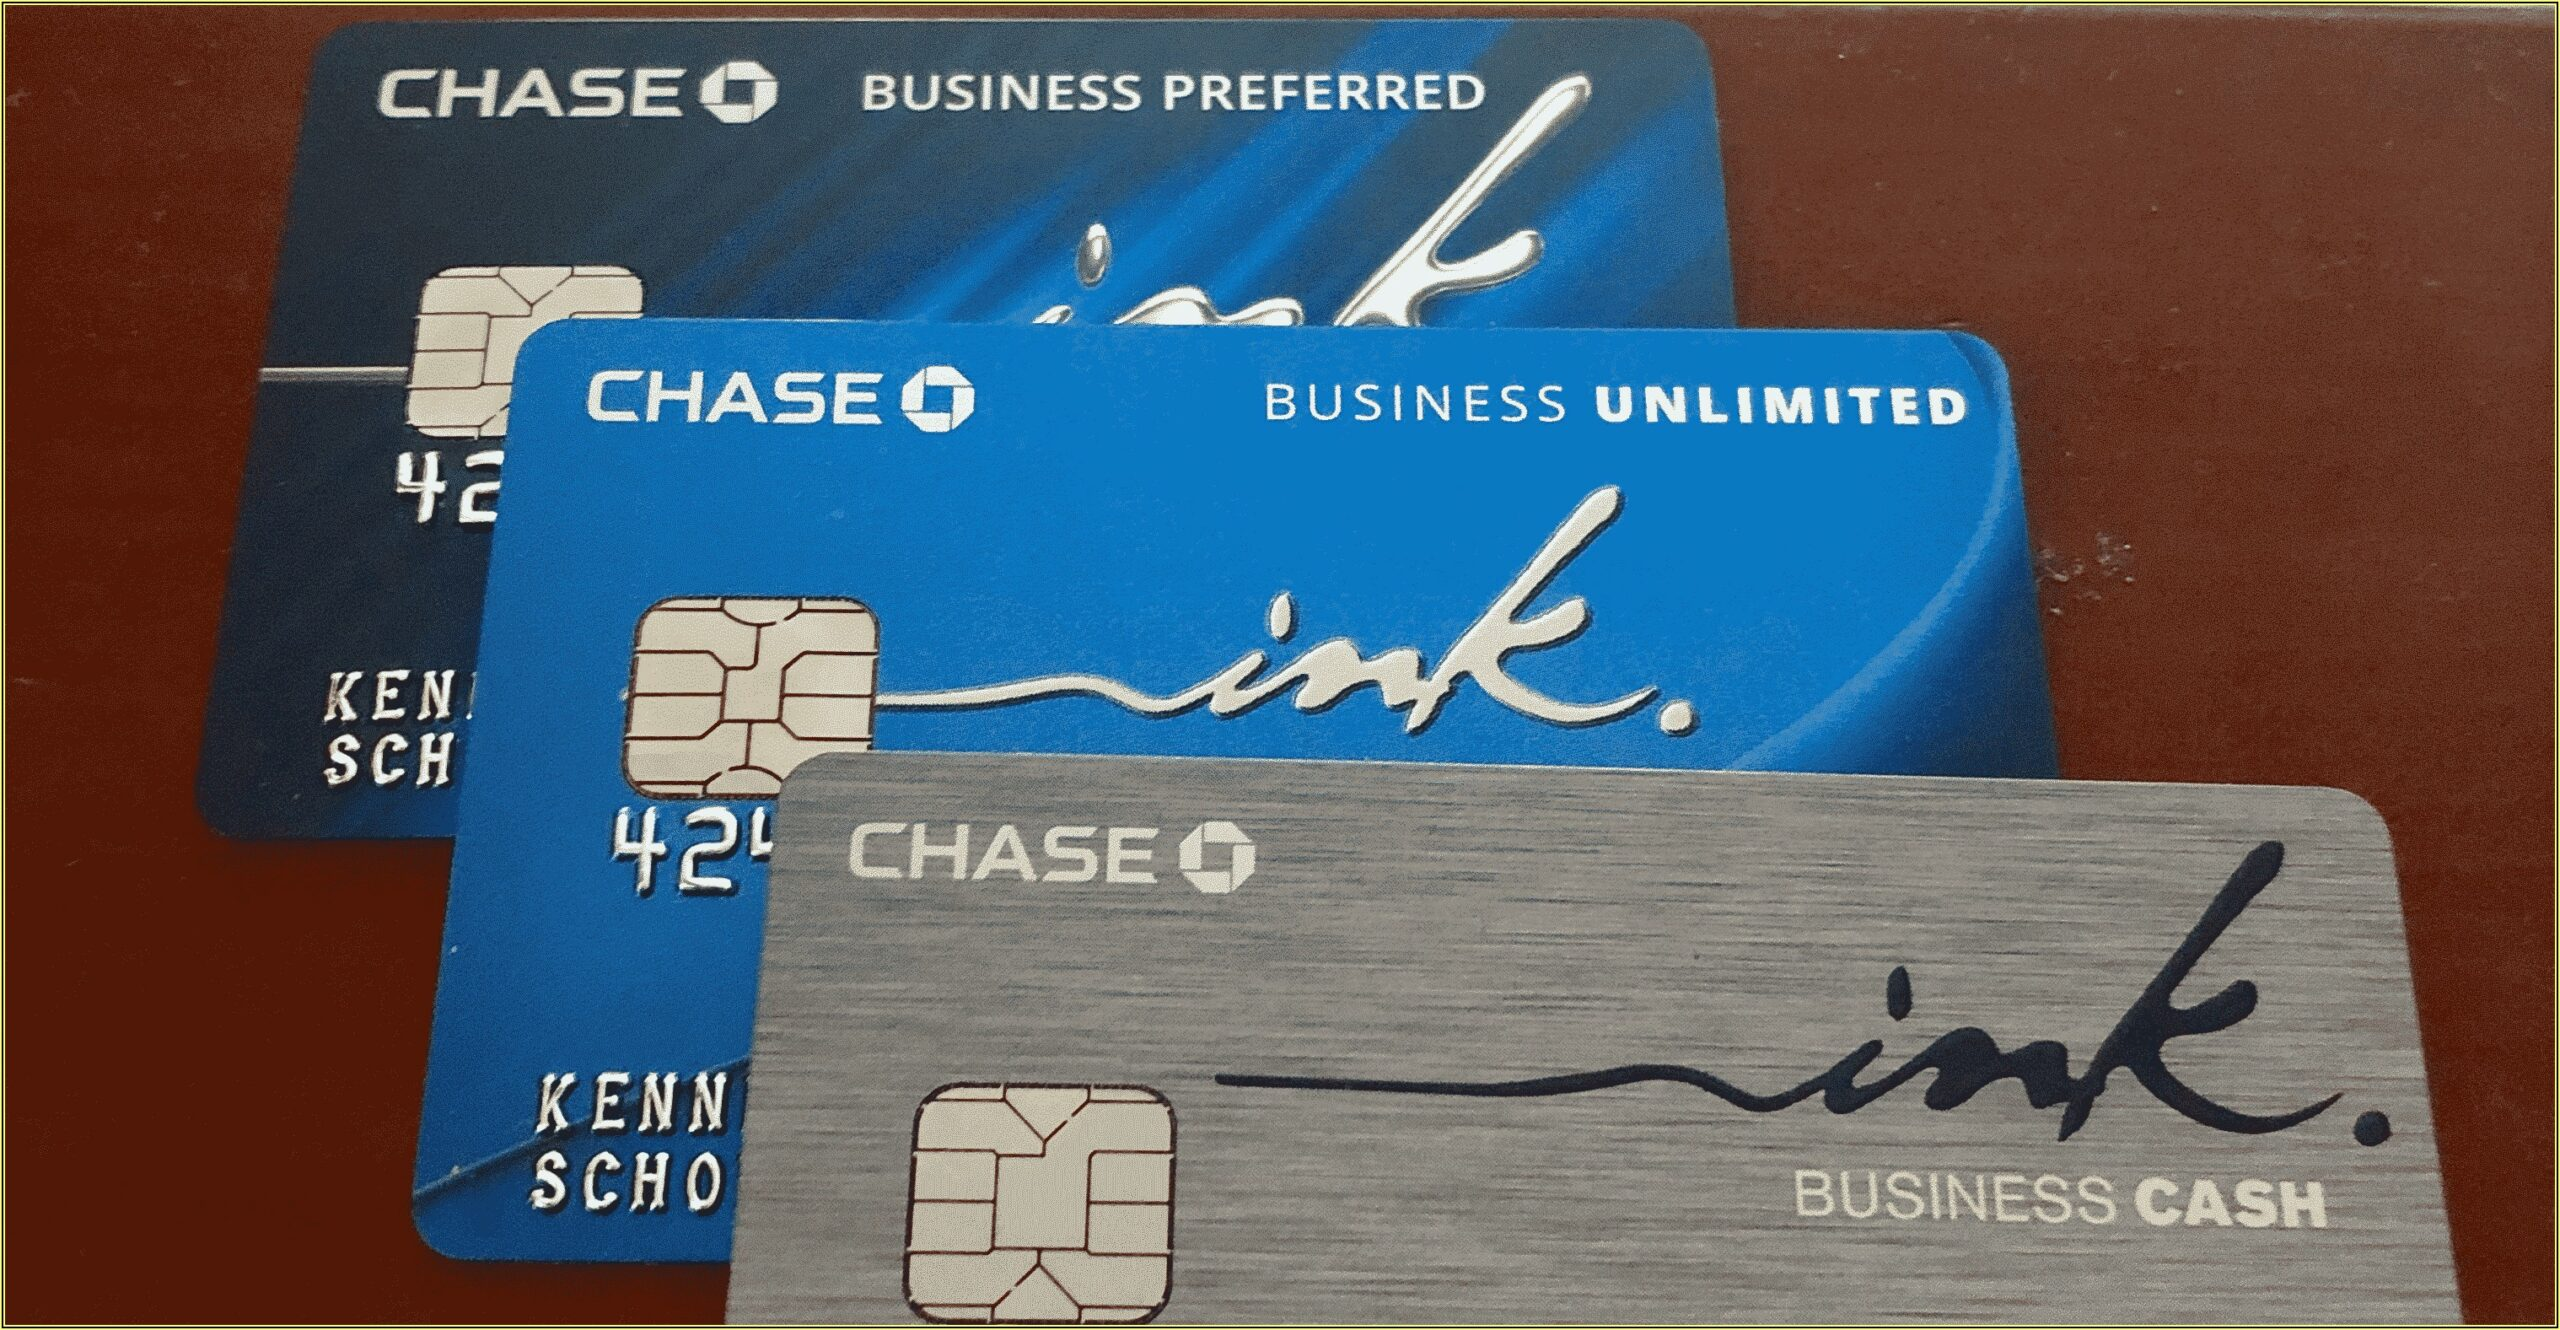 Chase Ink Business Preferred Credit Card Limit